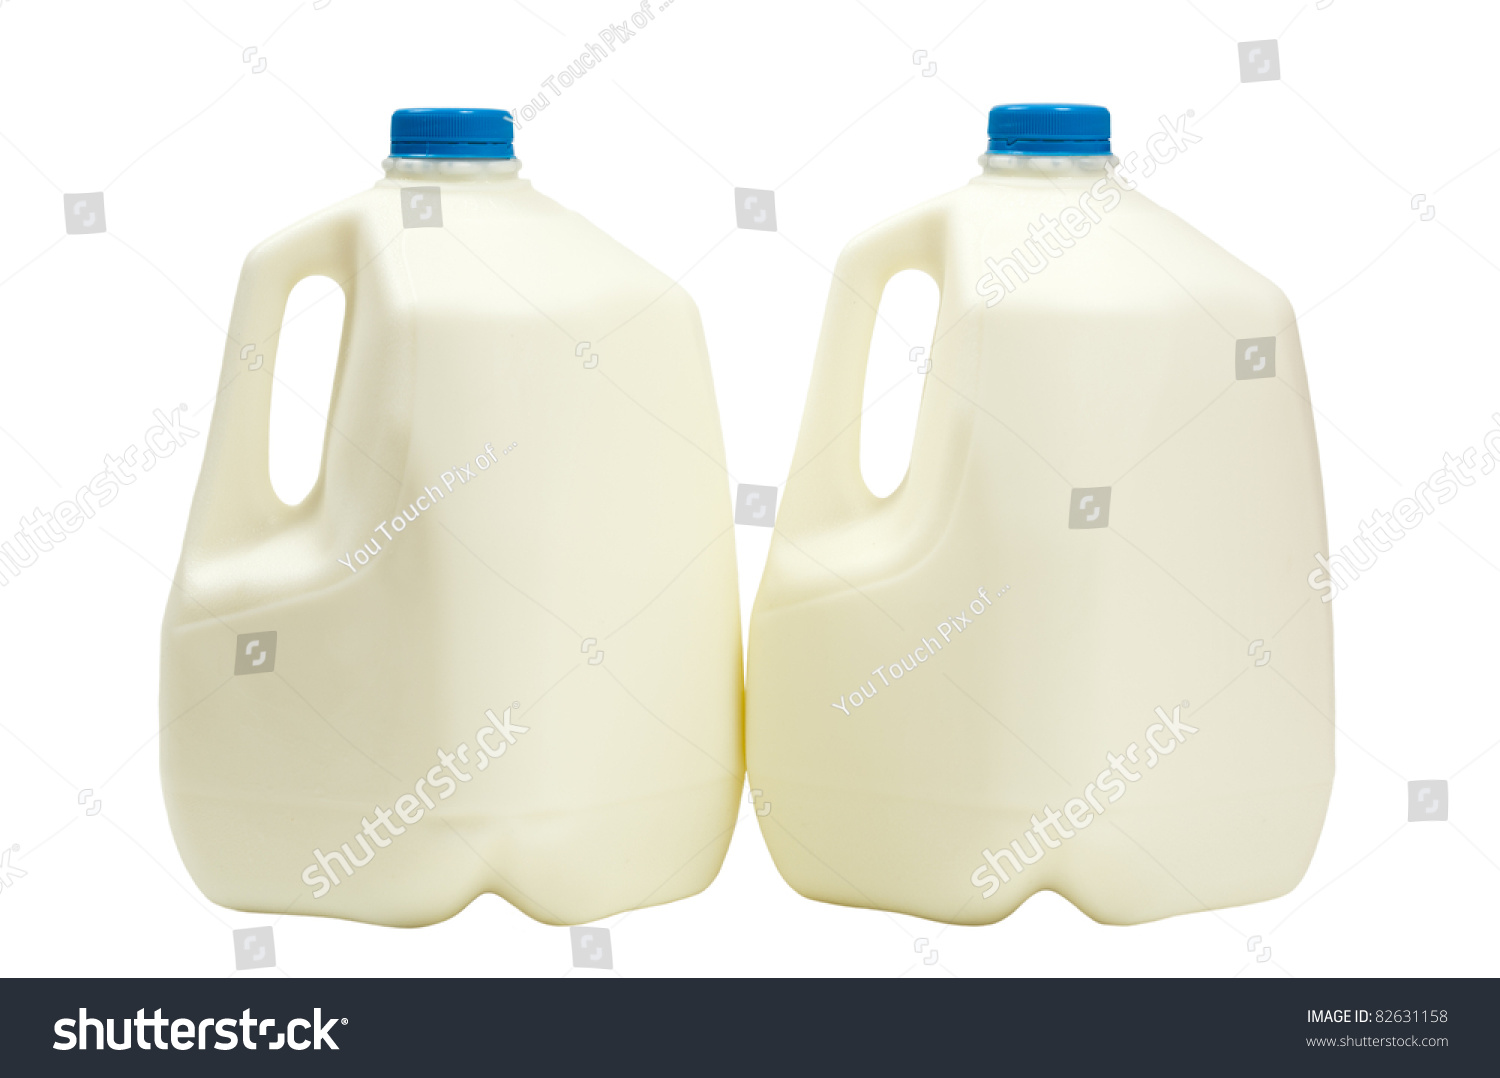 Two Gallons Milk Plastic Containers Isolated Stock Photo 82631158 ...